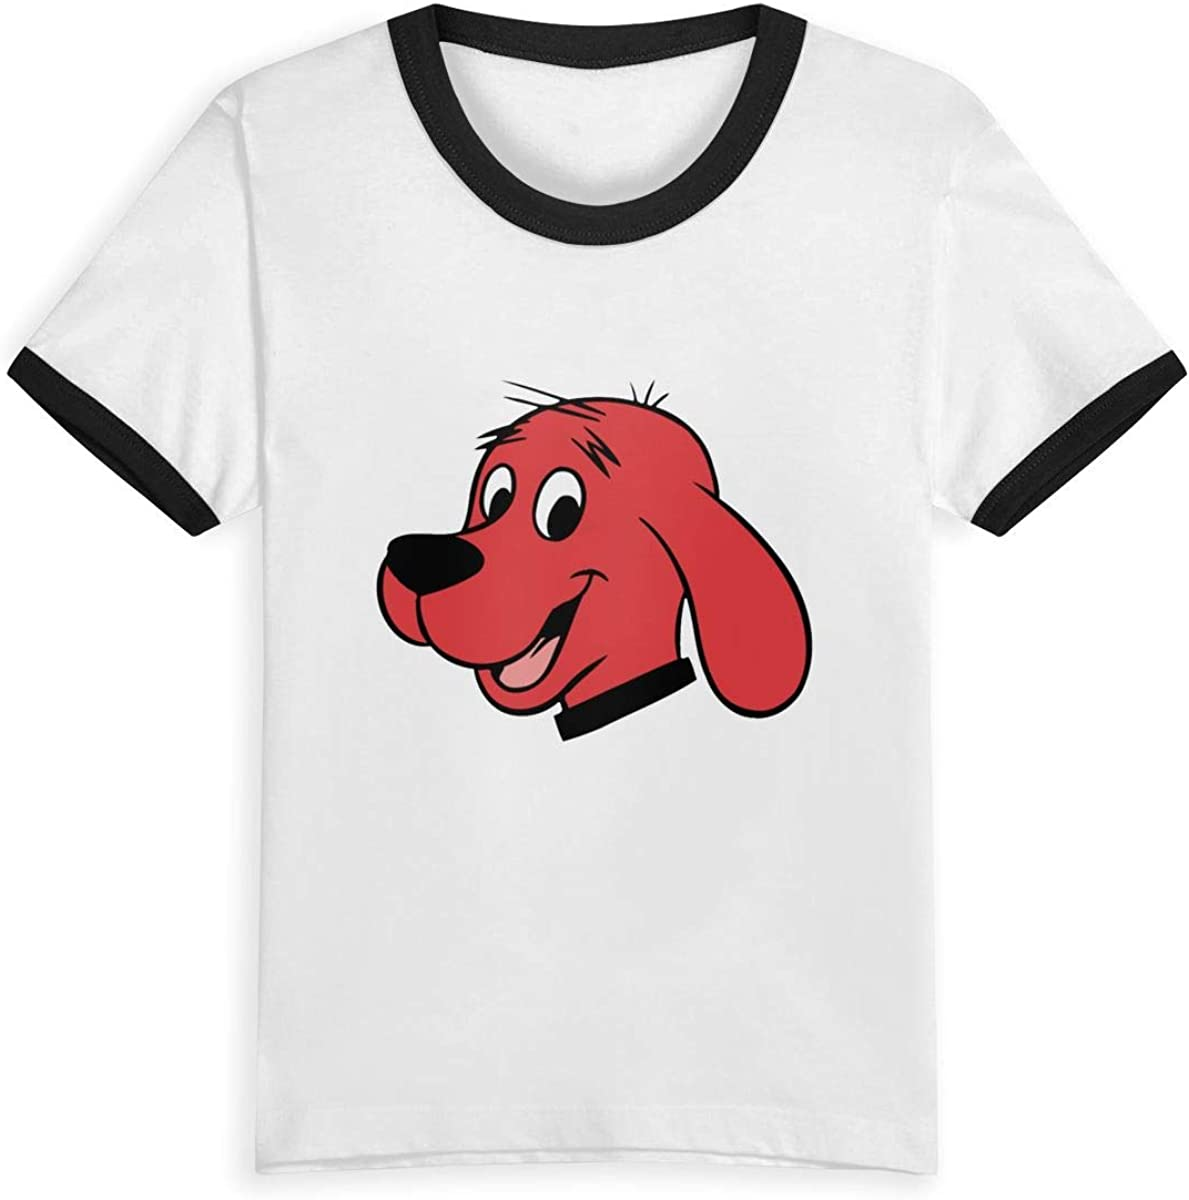 Clifford The Big Red Dog Child Kids Youth Teenagers T Shirt Graphic Crew Neck Tee Shirt Baby